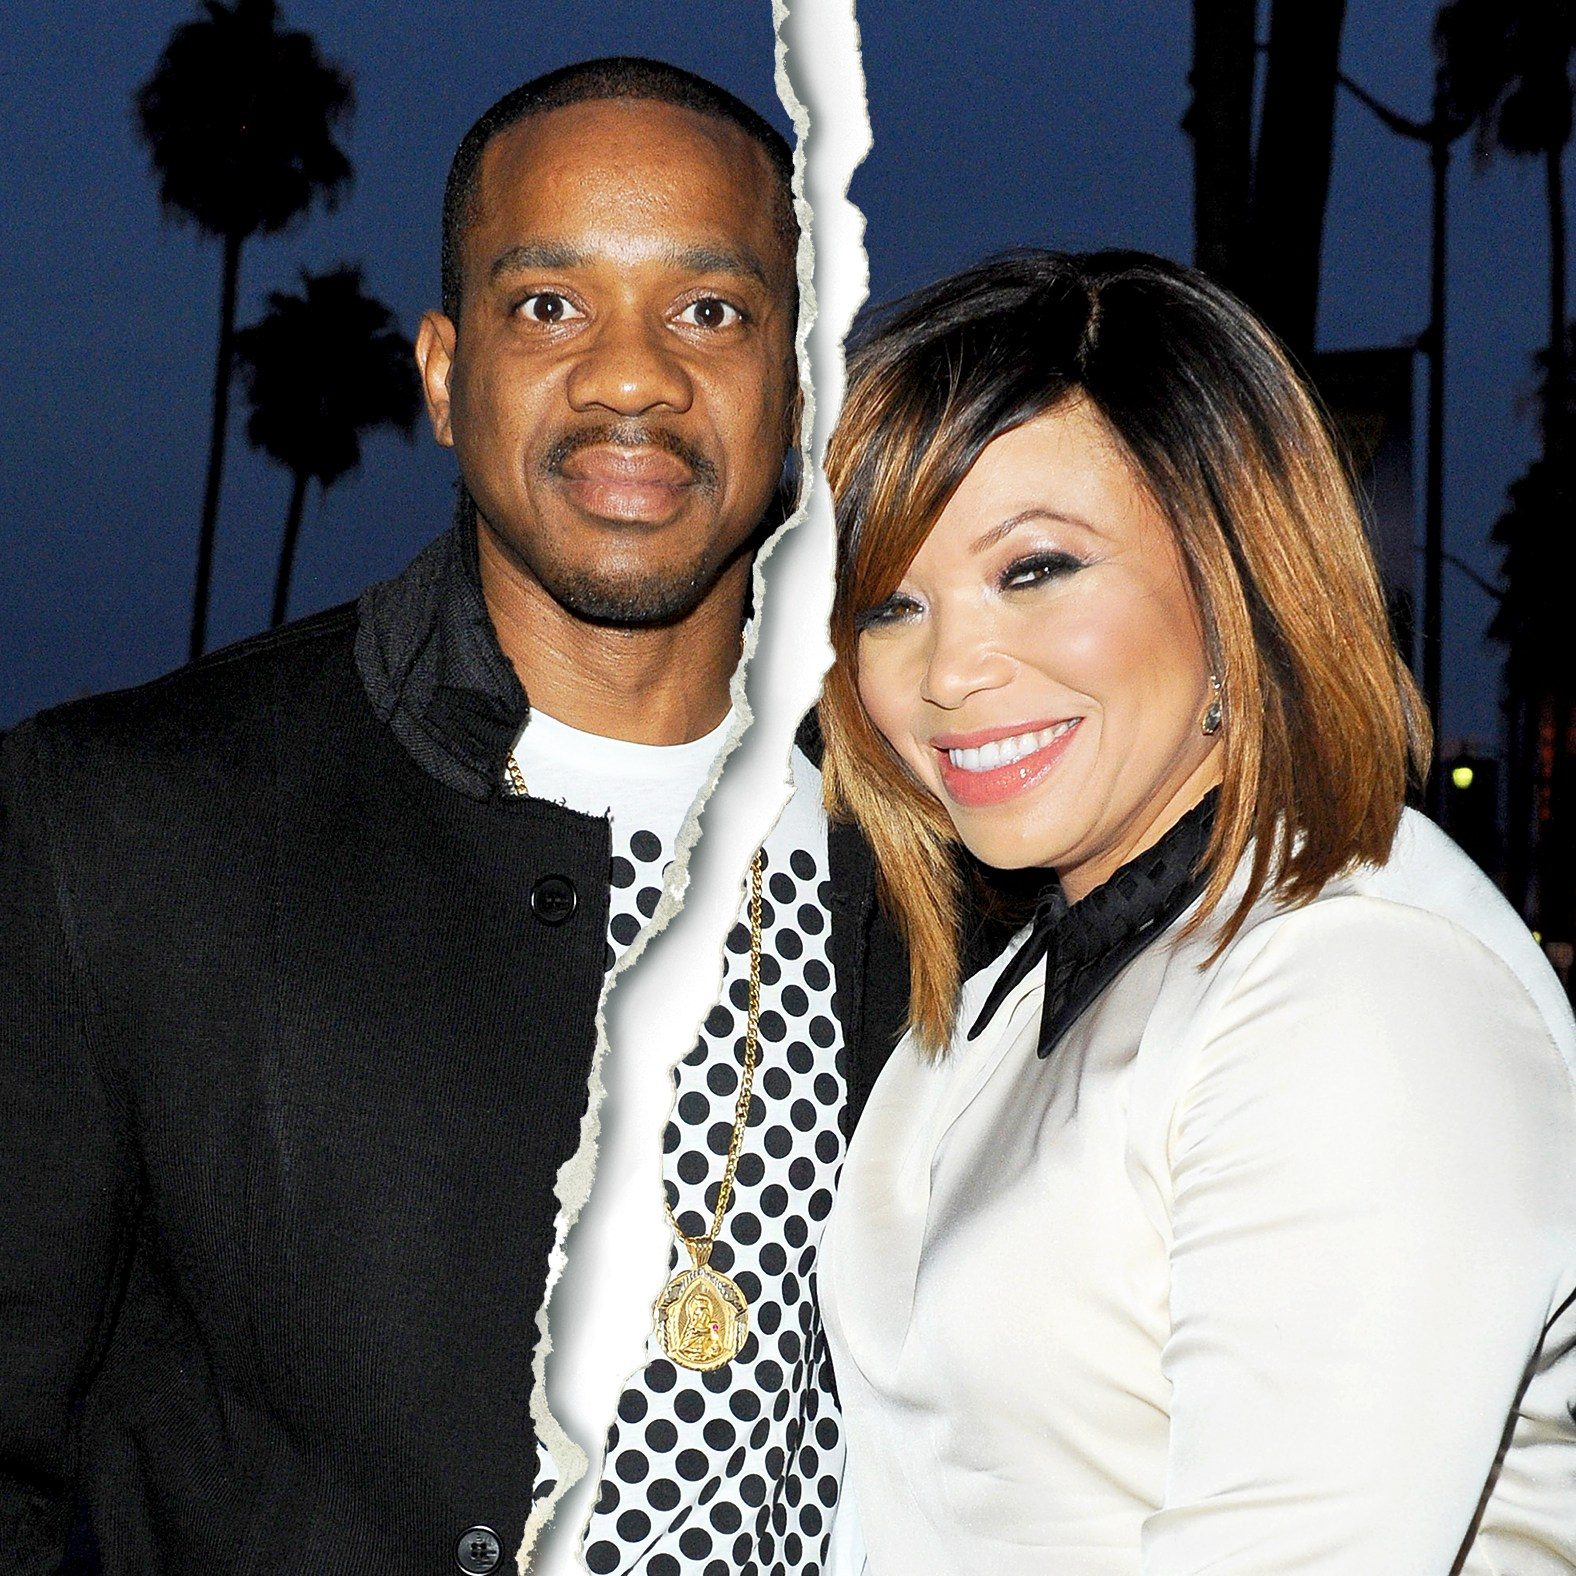 Duane Martin and Tisha Campbell attend Vivica A. Fox's 50th birthday celebration at Philippe Chow in Beverly Hills, California.